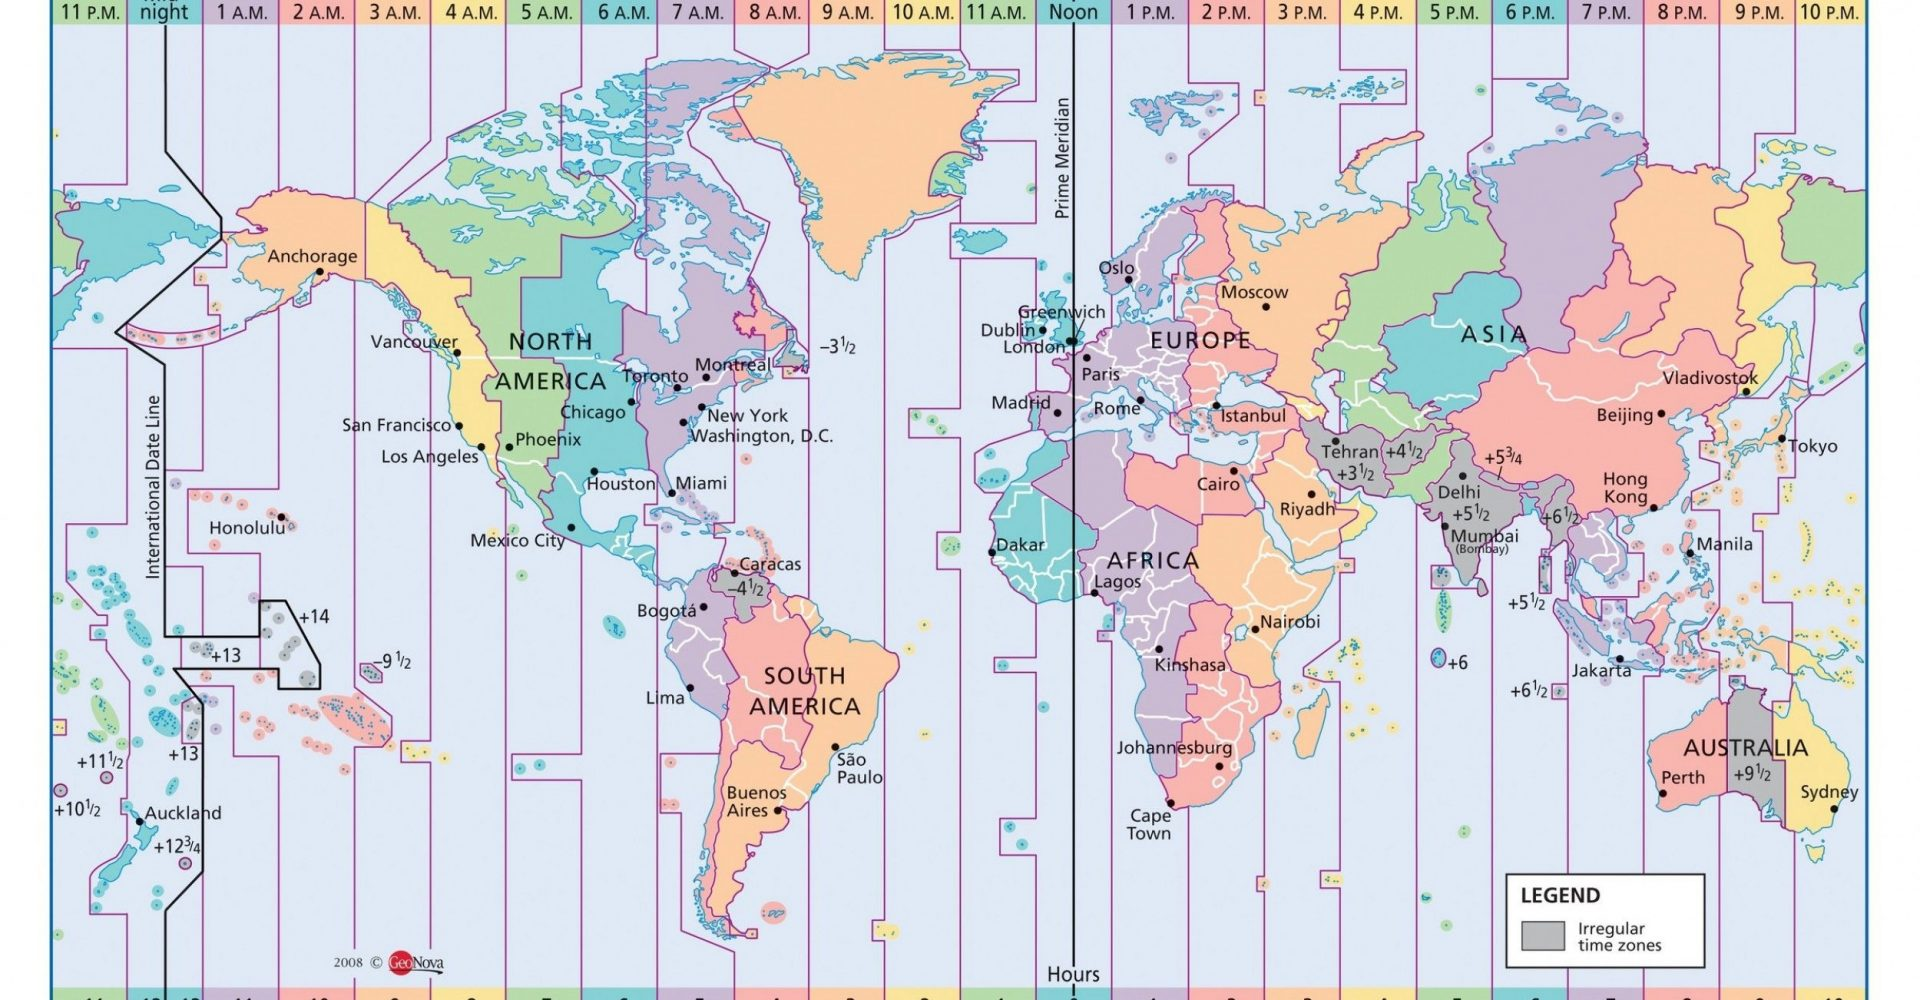 Usa Time Map Now (Favorite)